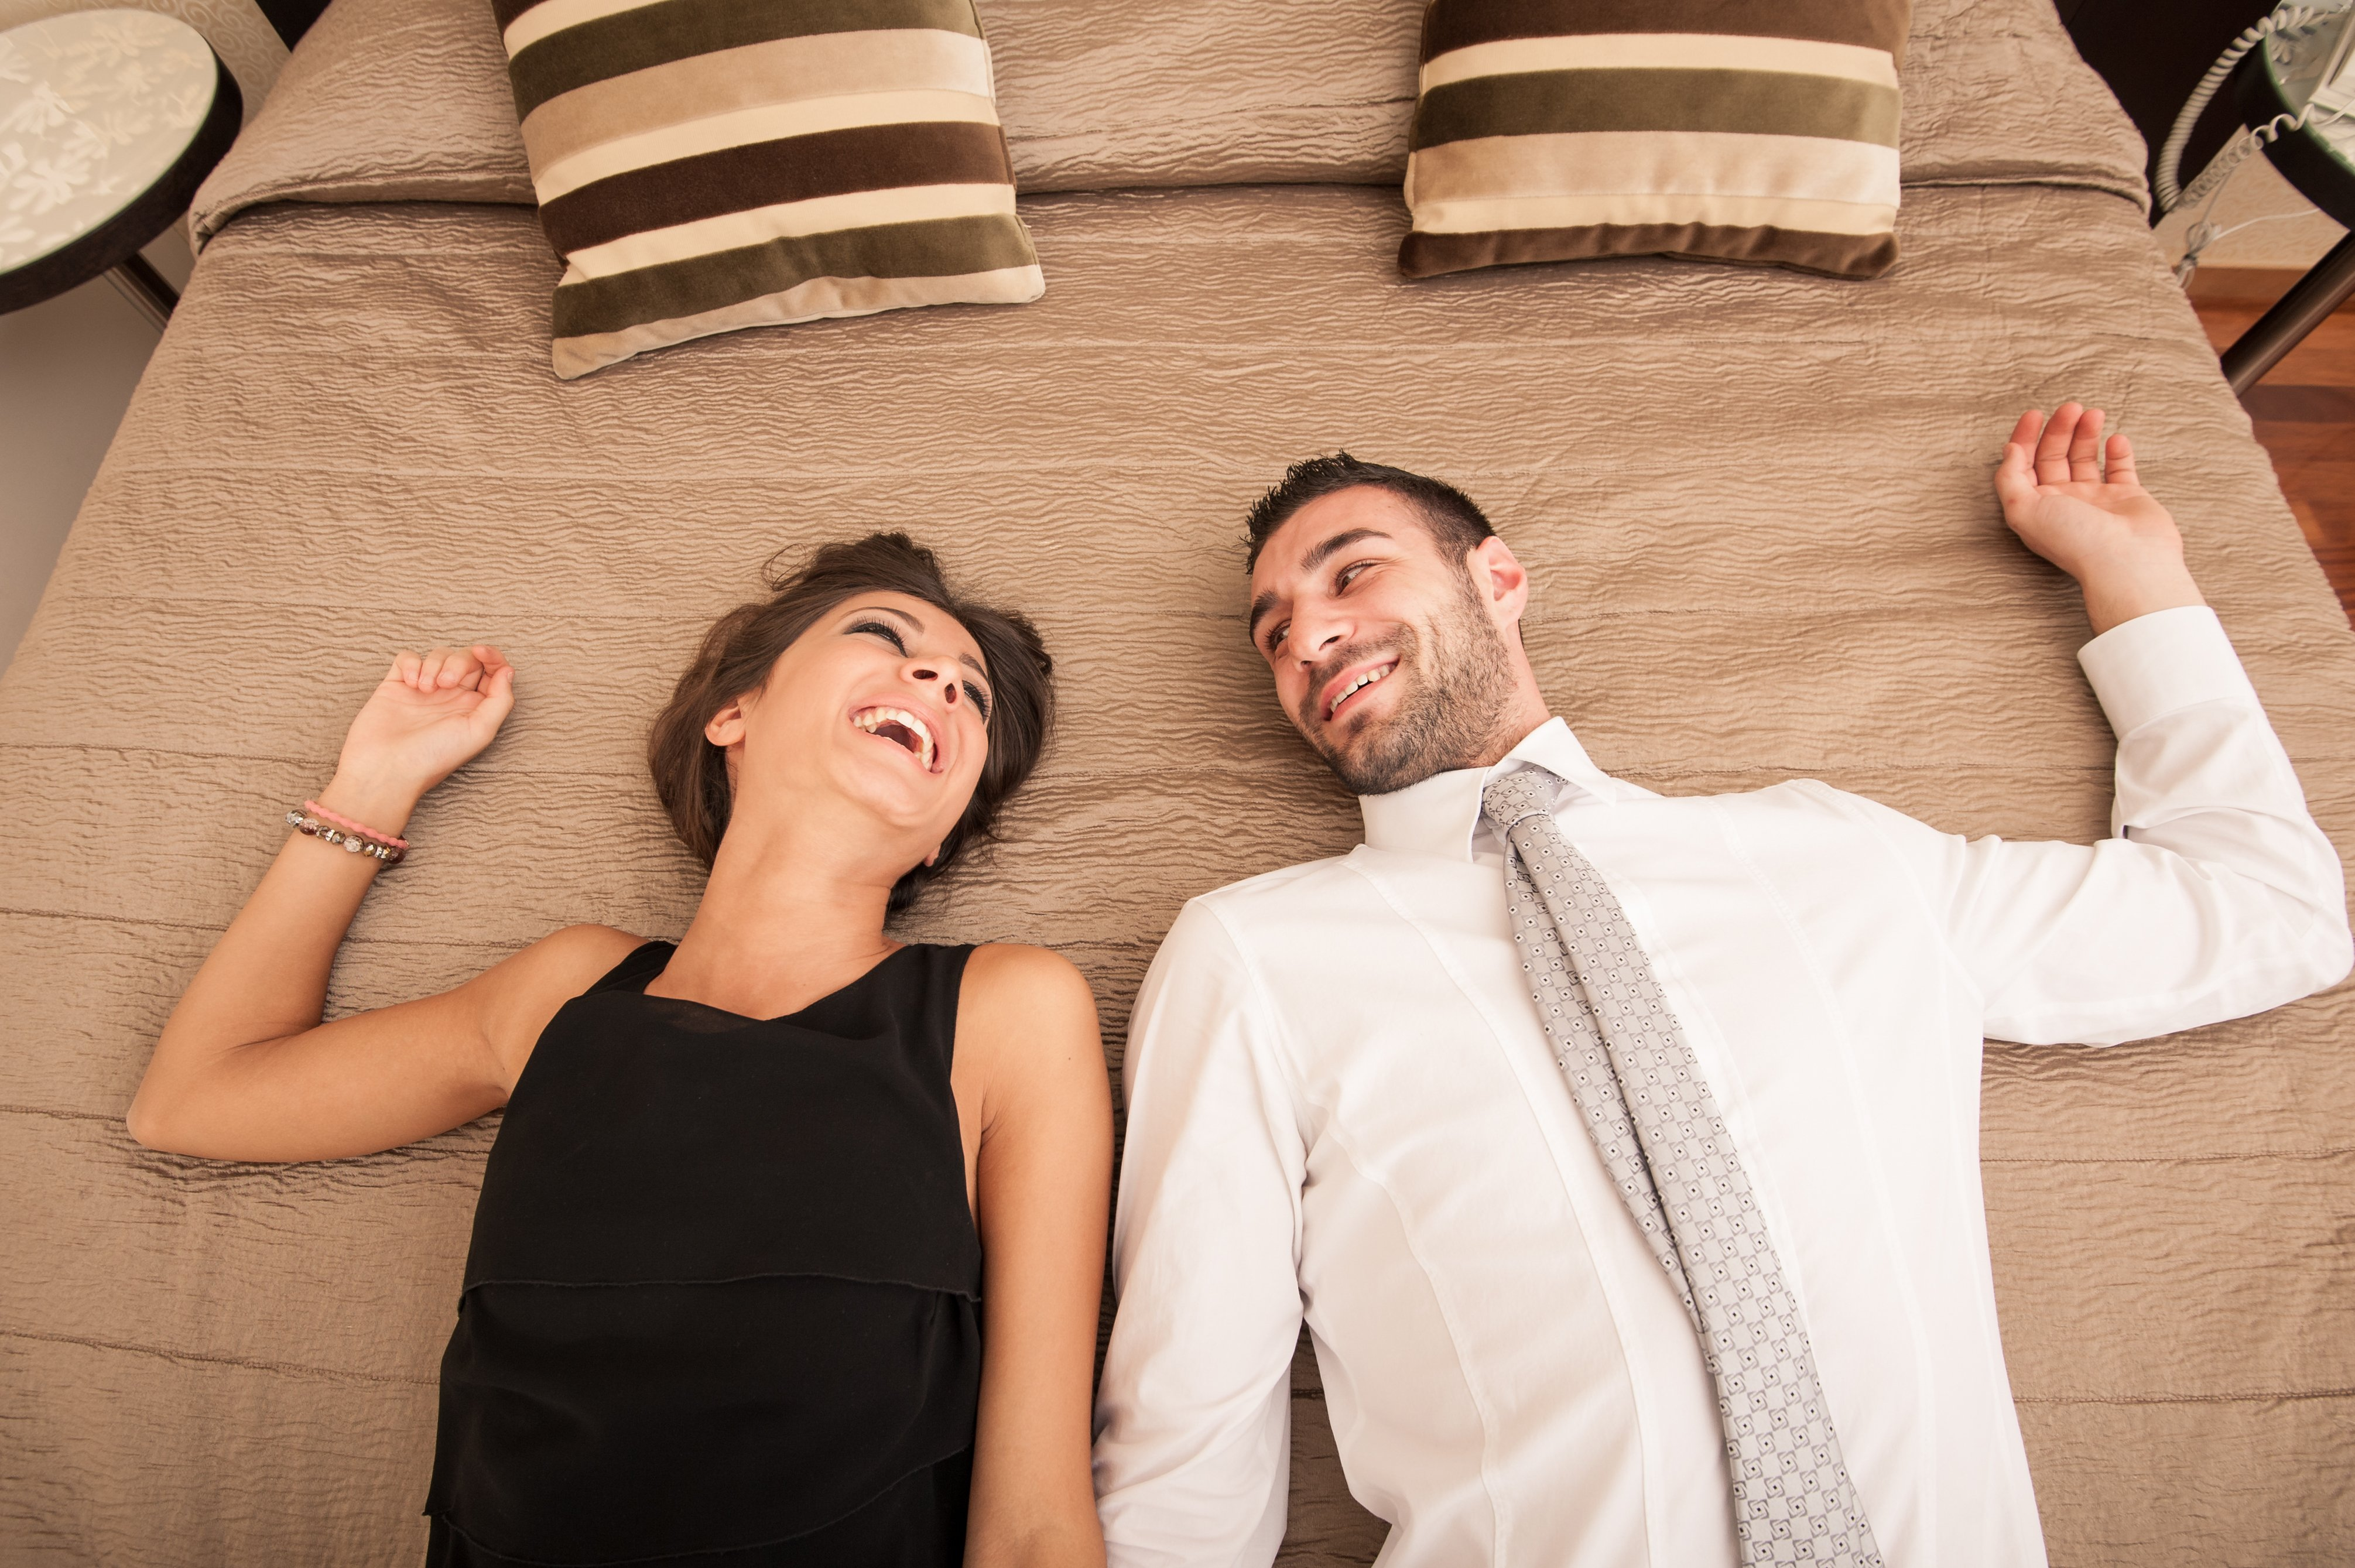 A career man and woman share a laugh. | Photo: Shutterstock